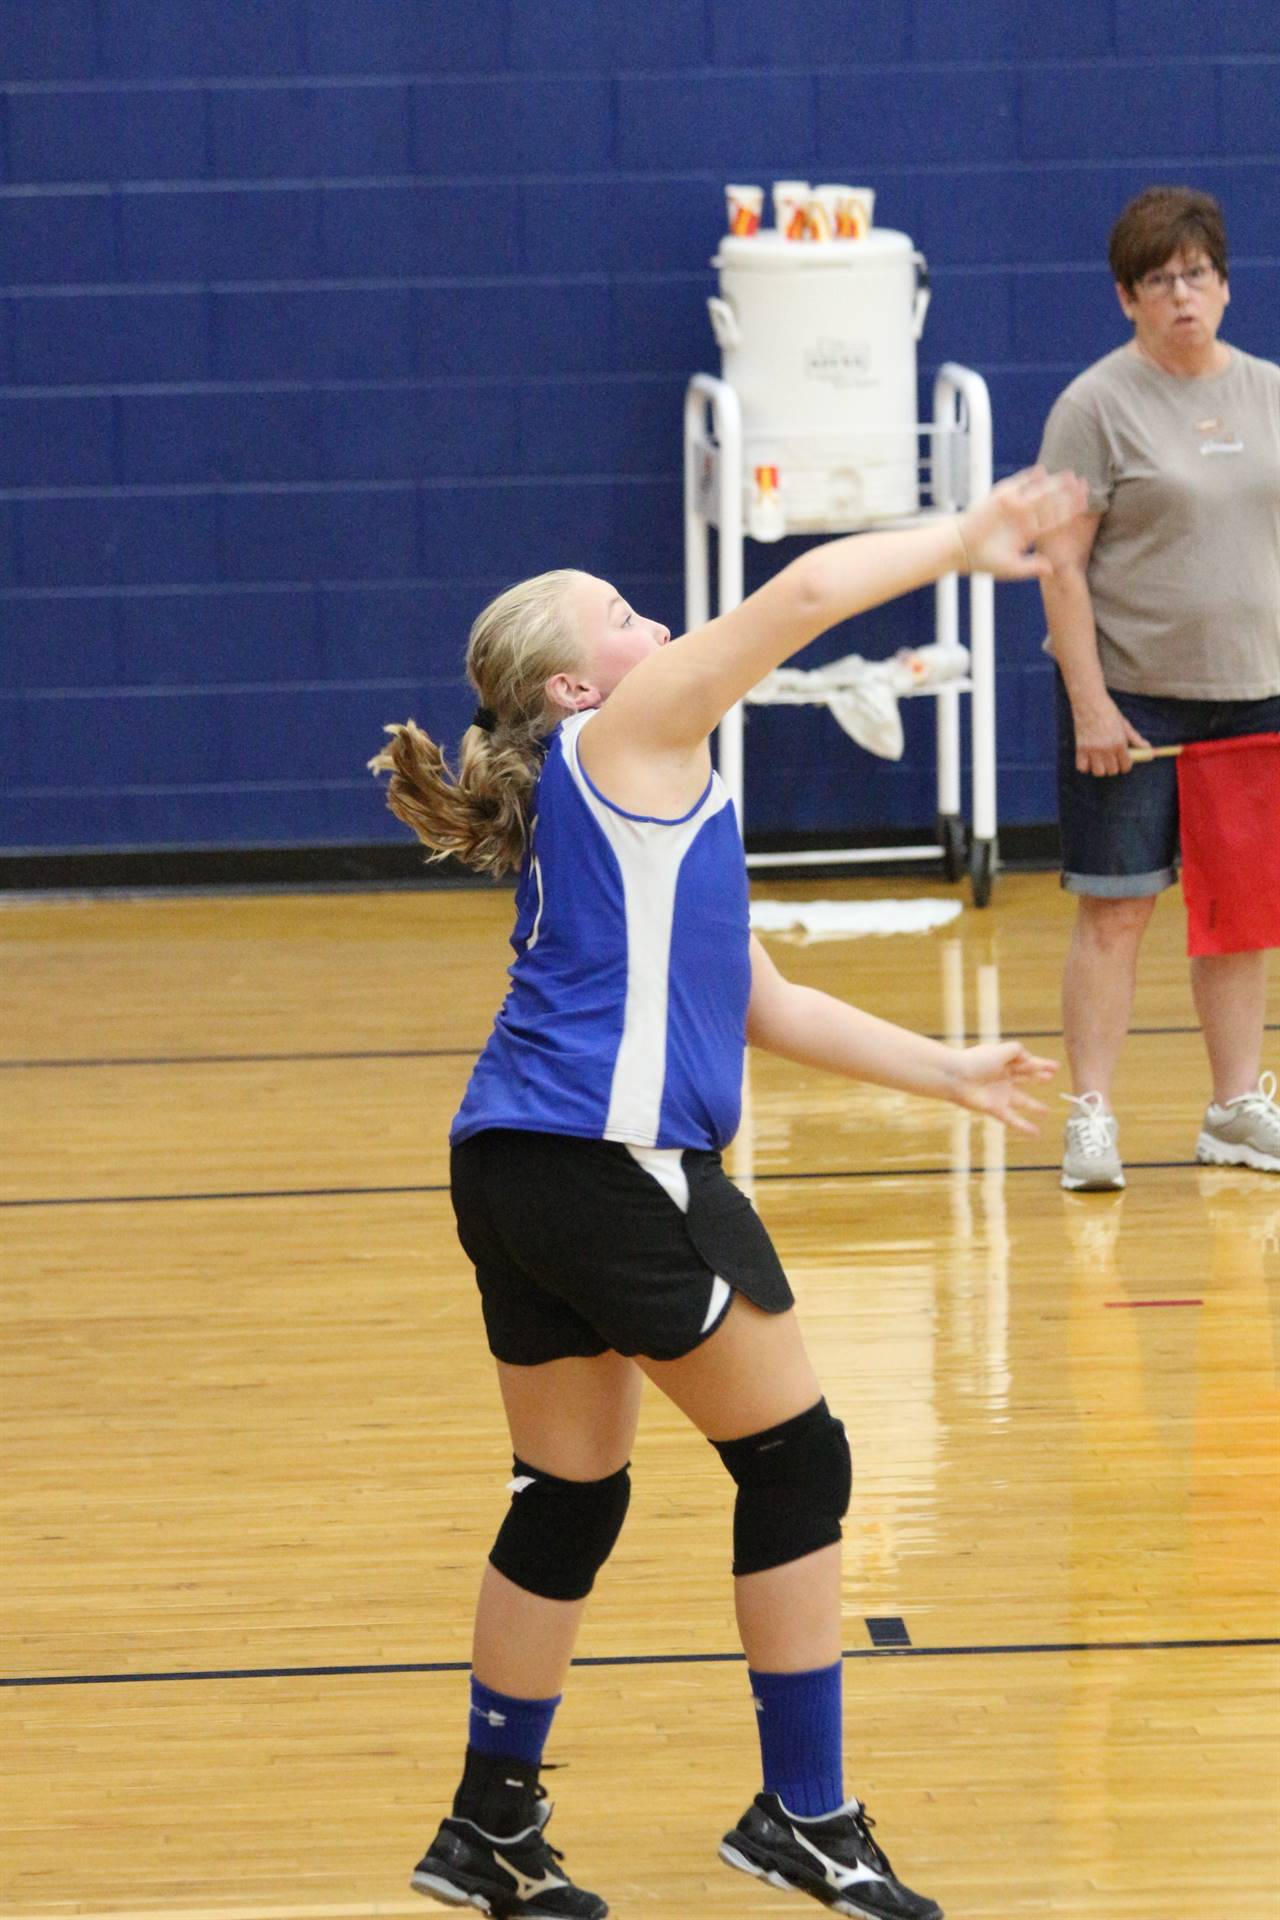 JH Volleyball vs Huntington